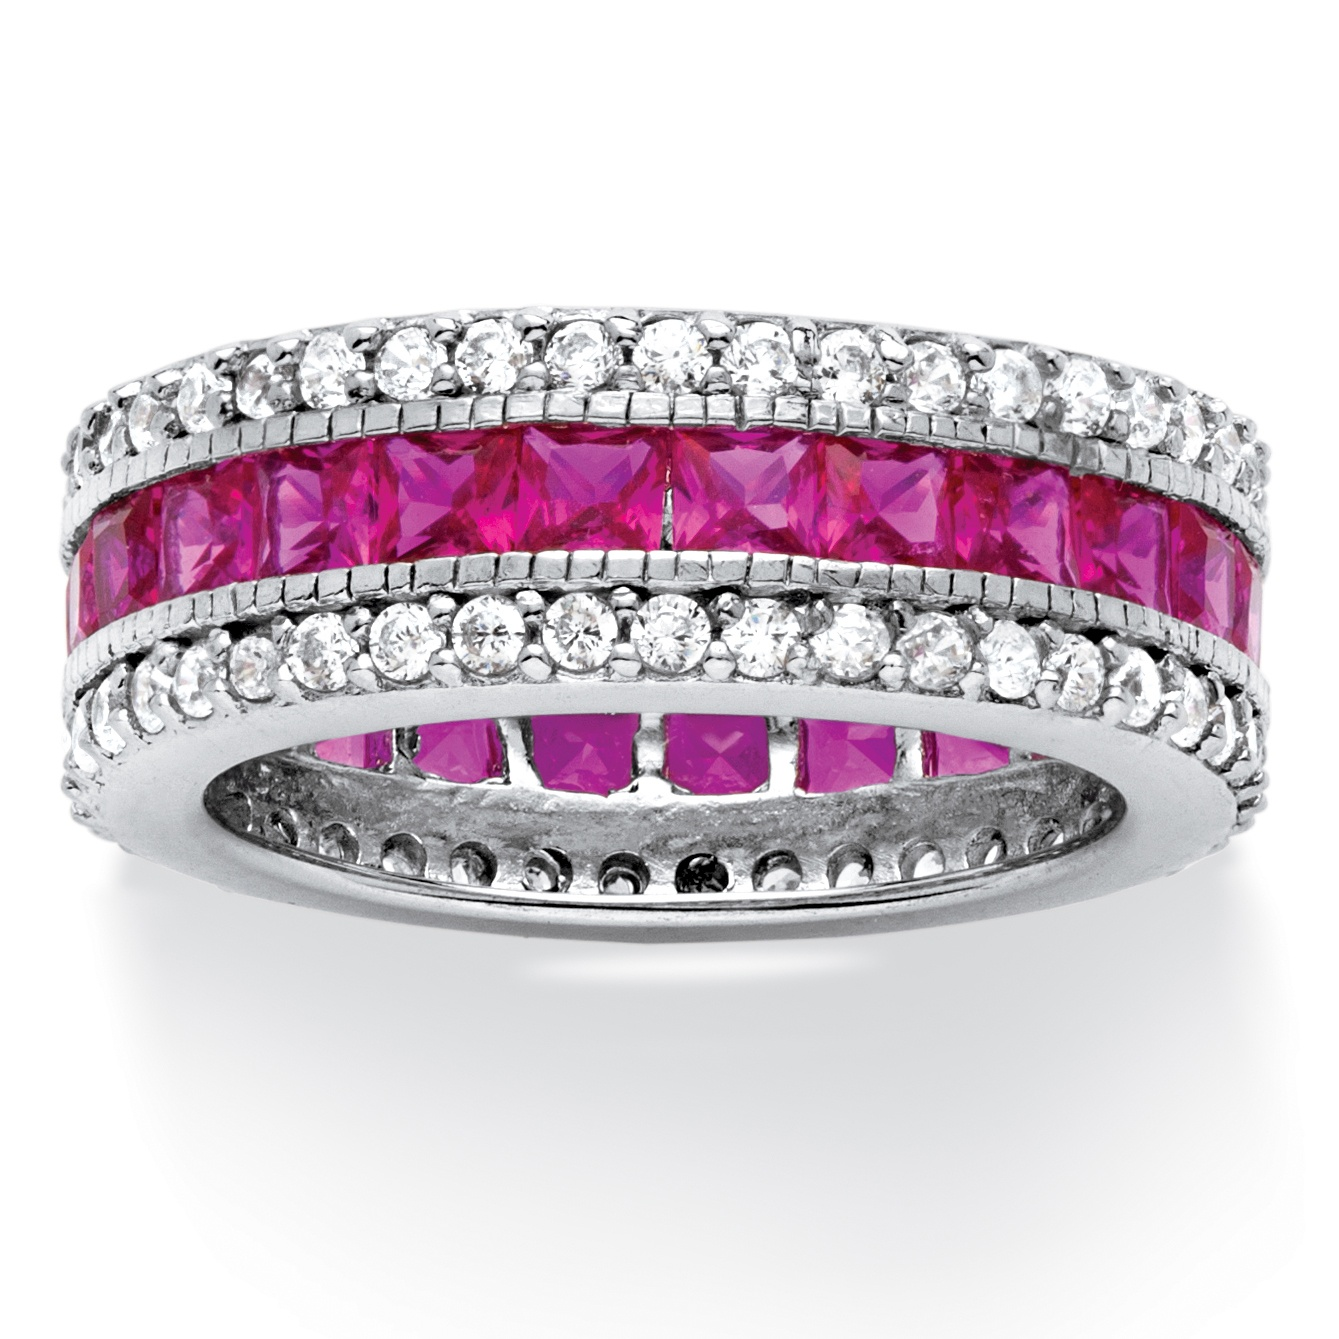 10.83 TCW Princess-Cut Lab Created Ruby Eternity Ring in Platinum over Sterling Silver